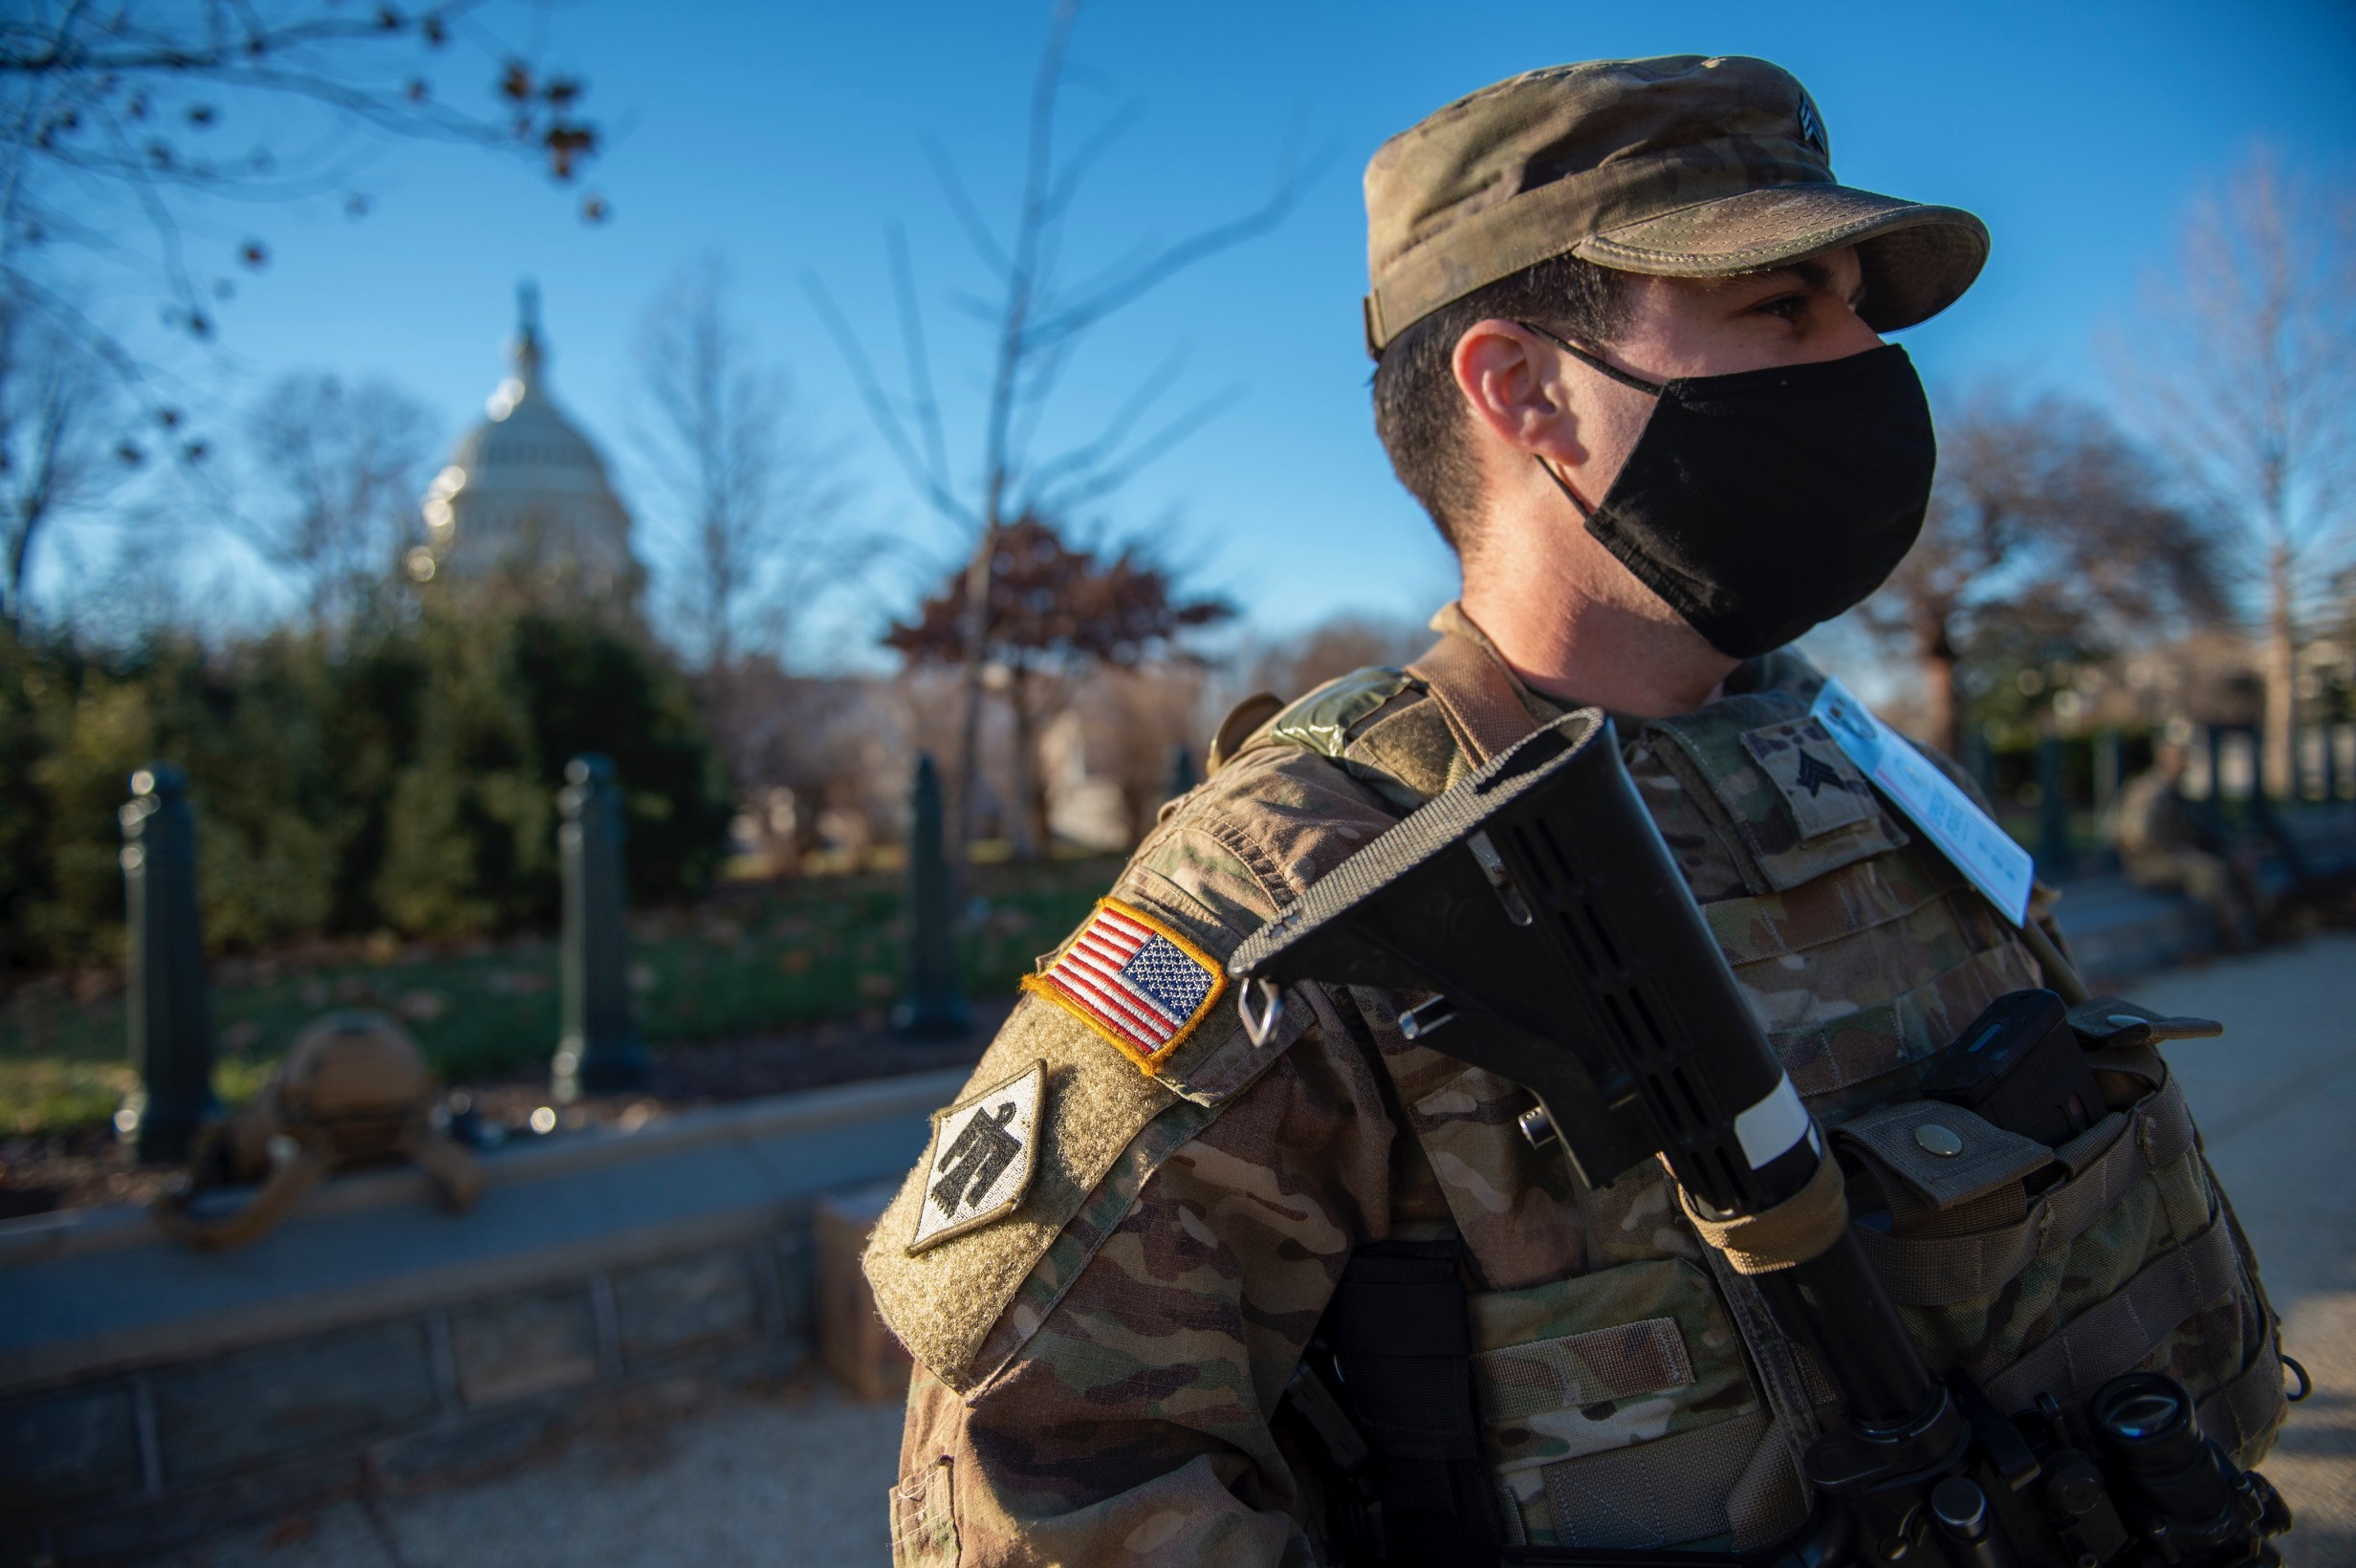 Morale efforts sustain Guard members during DC mission ...